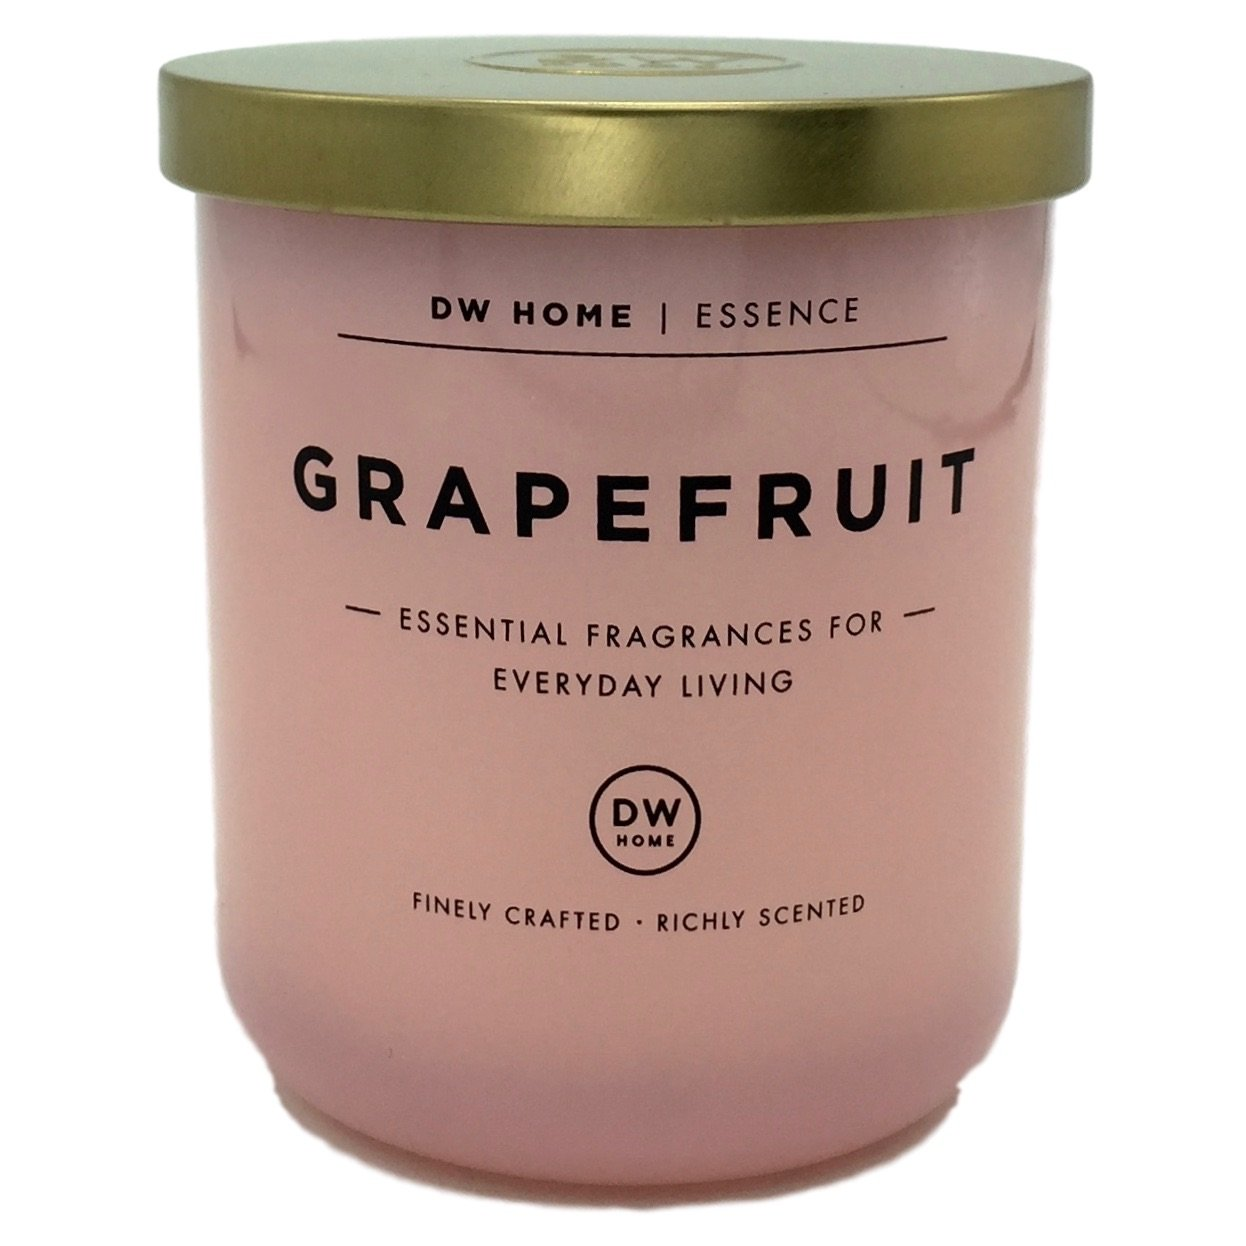 Dw Home Grapefruit Scented Soy Wax Blend Candle Essential Fragrances For Everyday Living 9 Oz